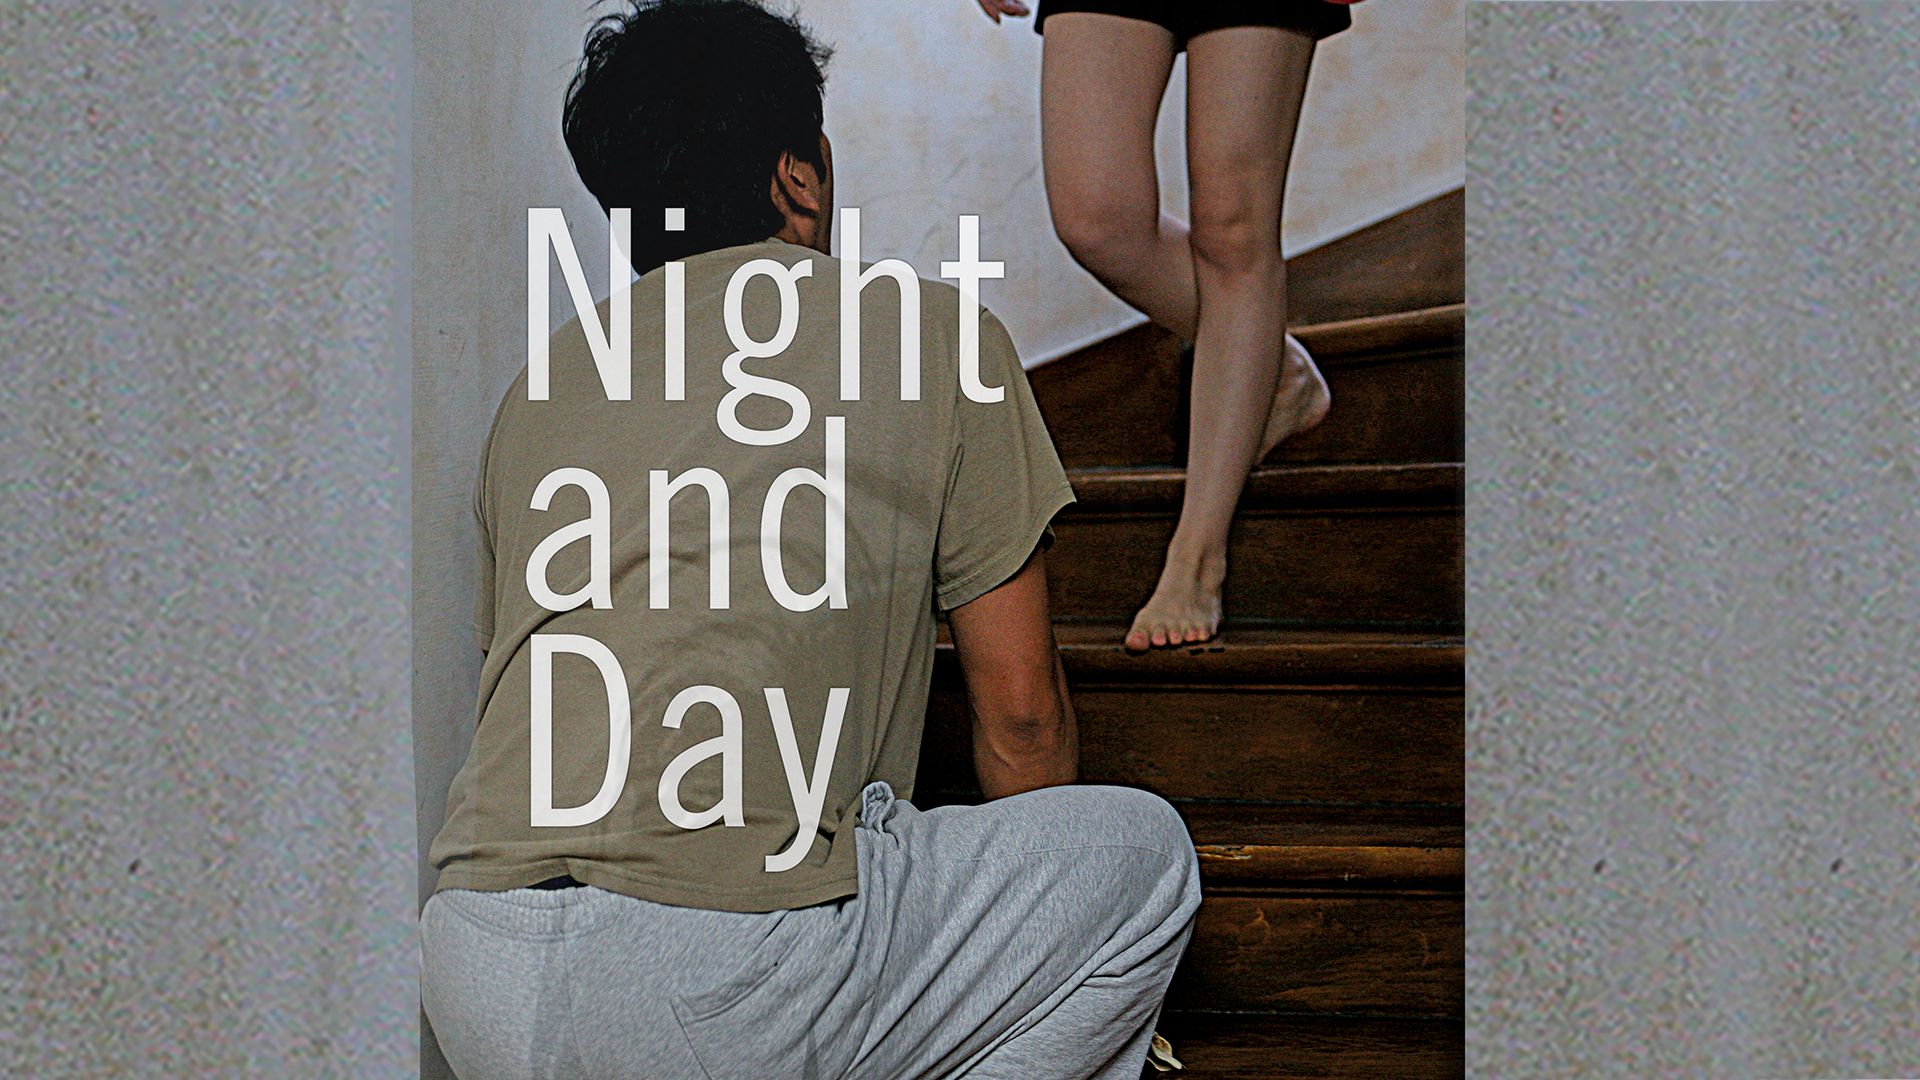 Night and Day (English Subtitled)